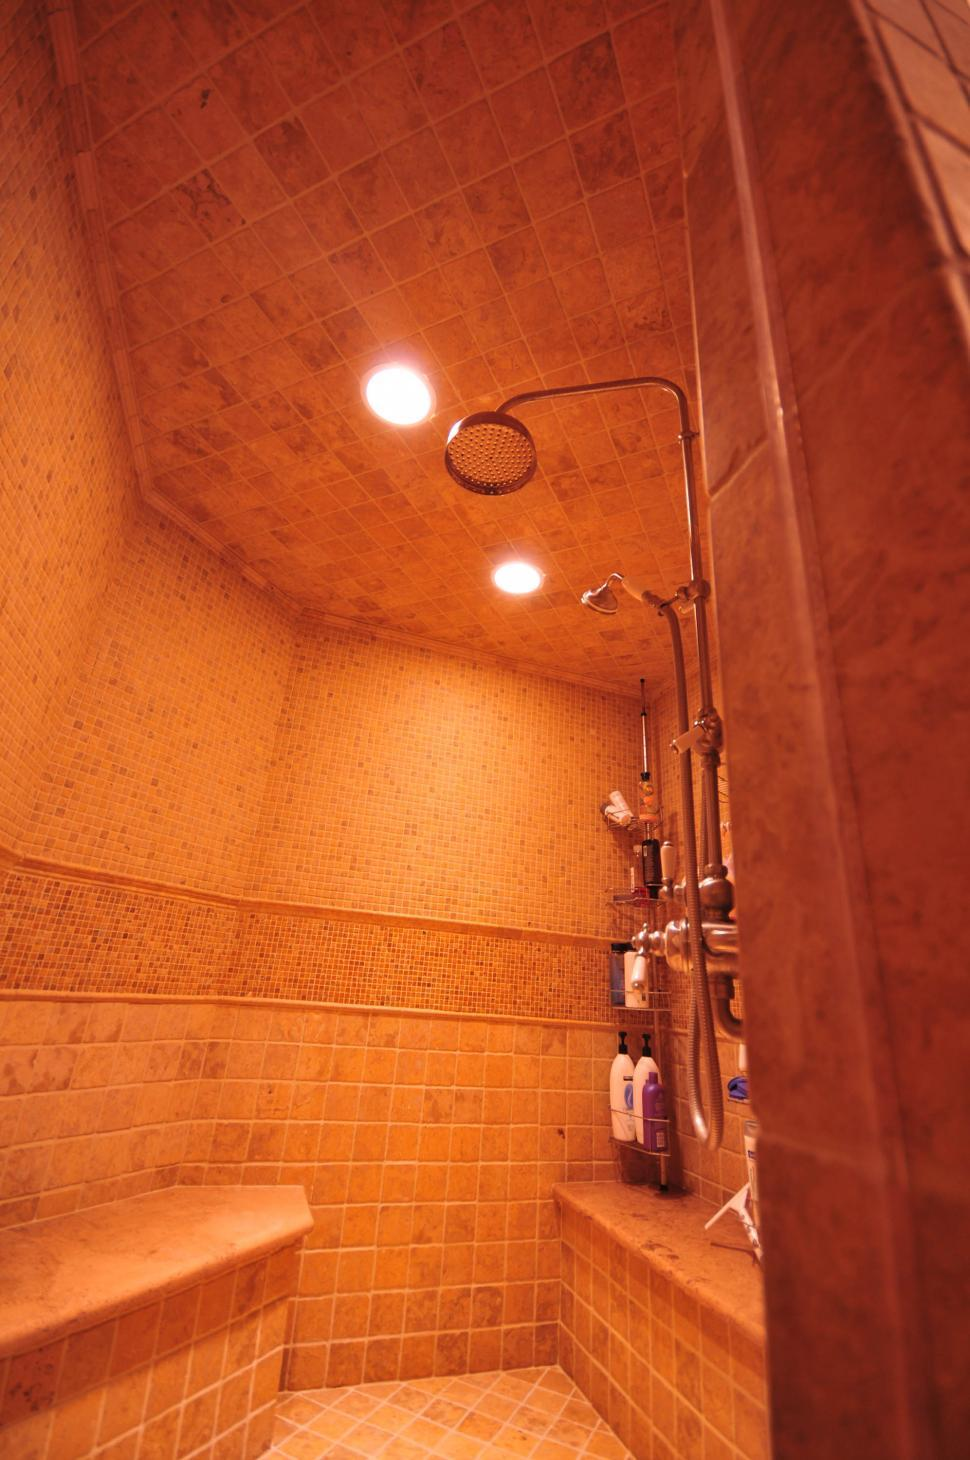 Download Free Stock HD Photo of Walk in shower Online